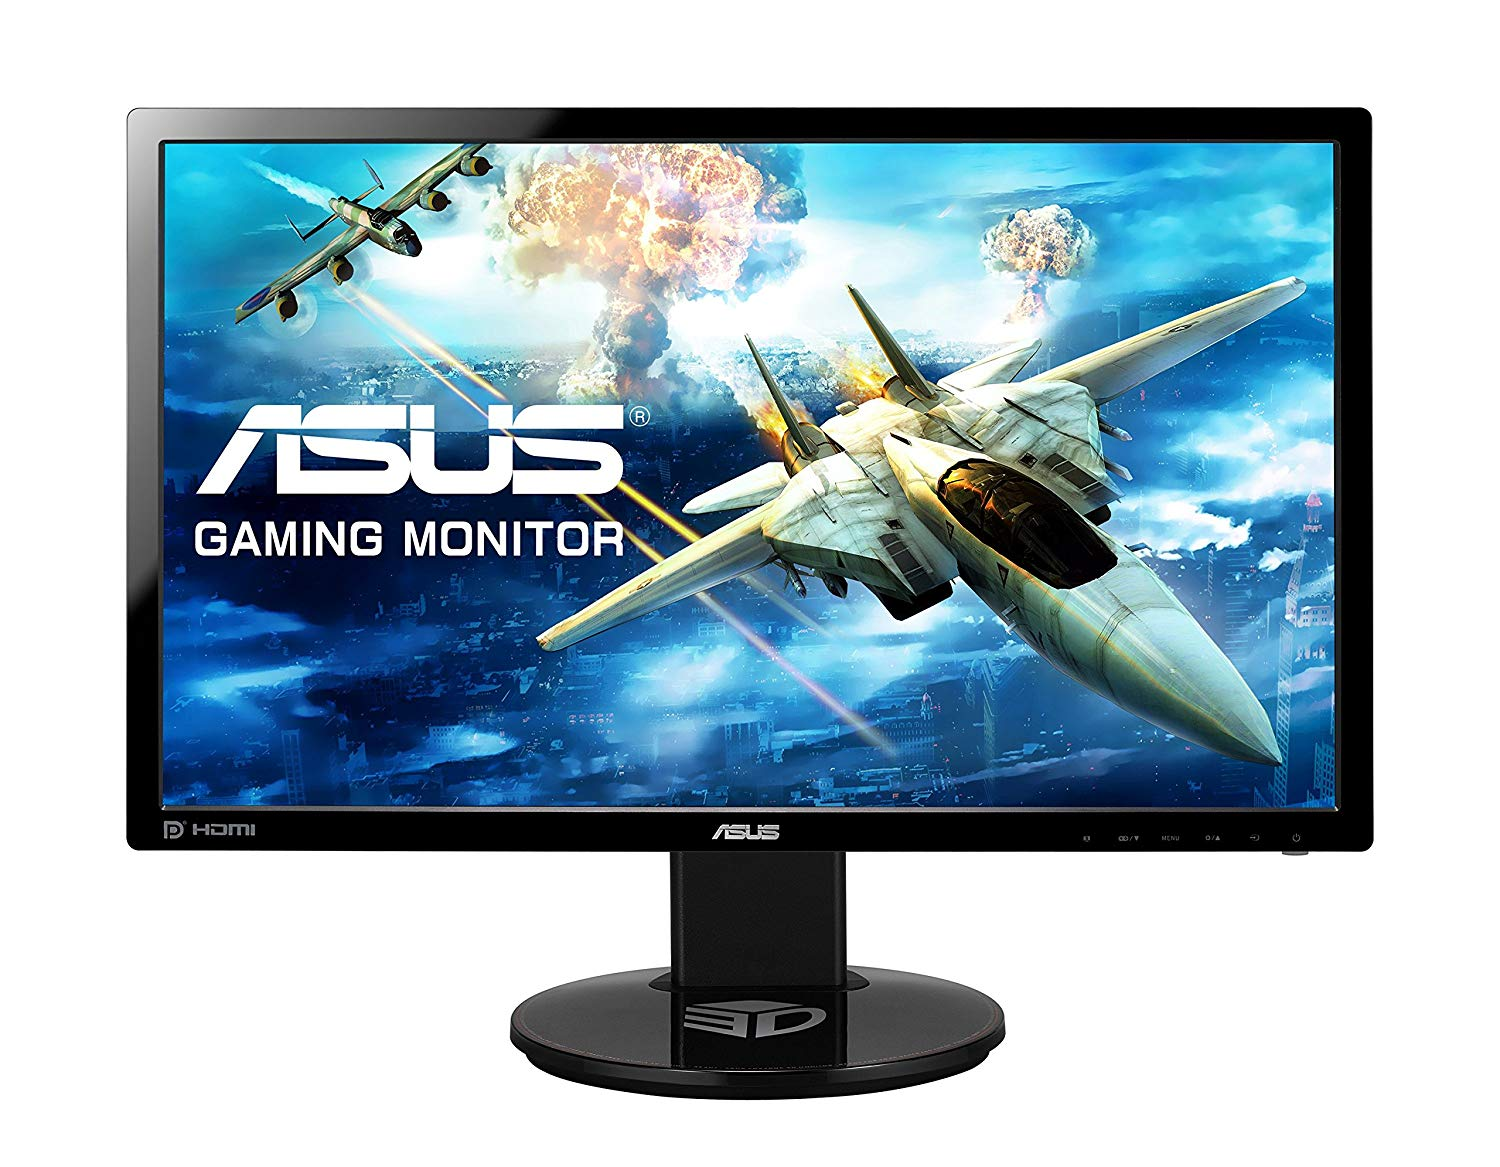 ASUS VG248QE 24 inch Widescreen LED Multimedia 3D Monitor – Black